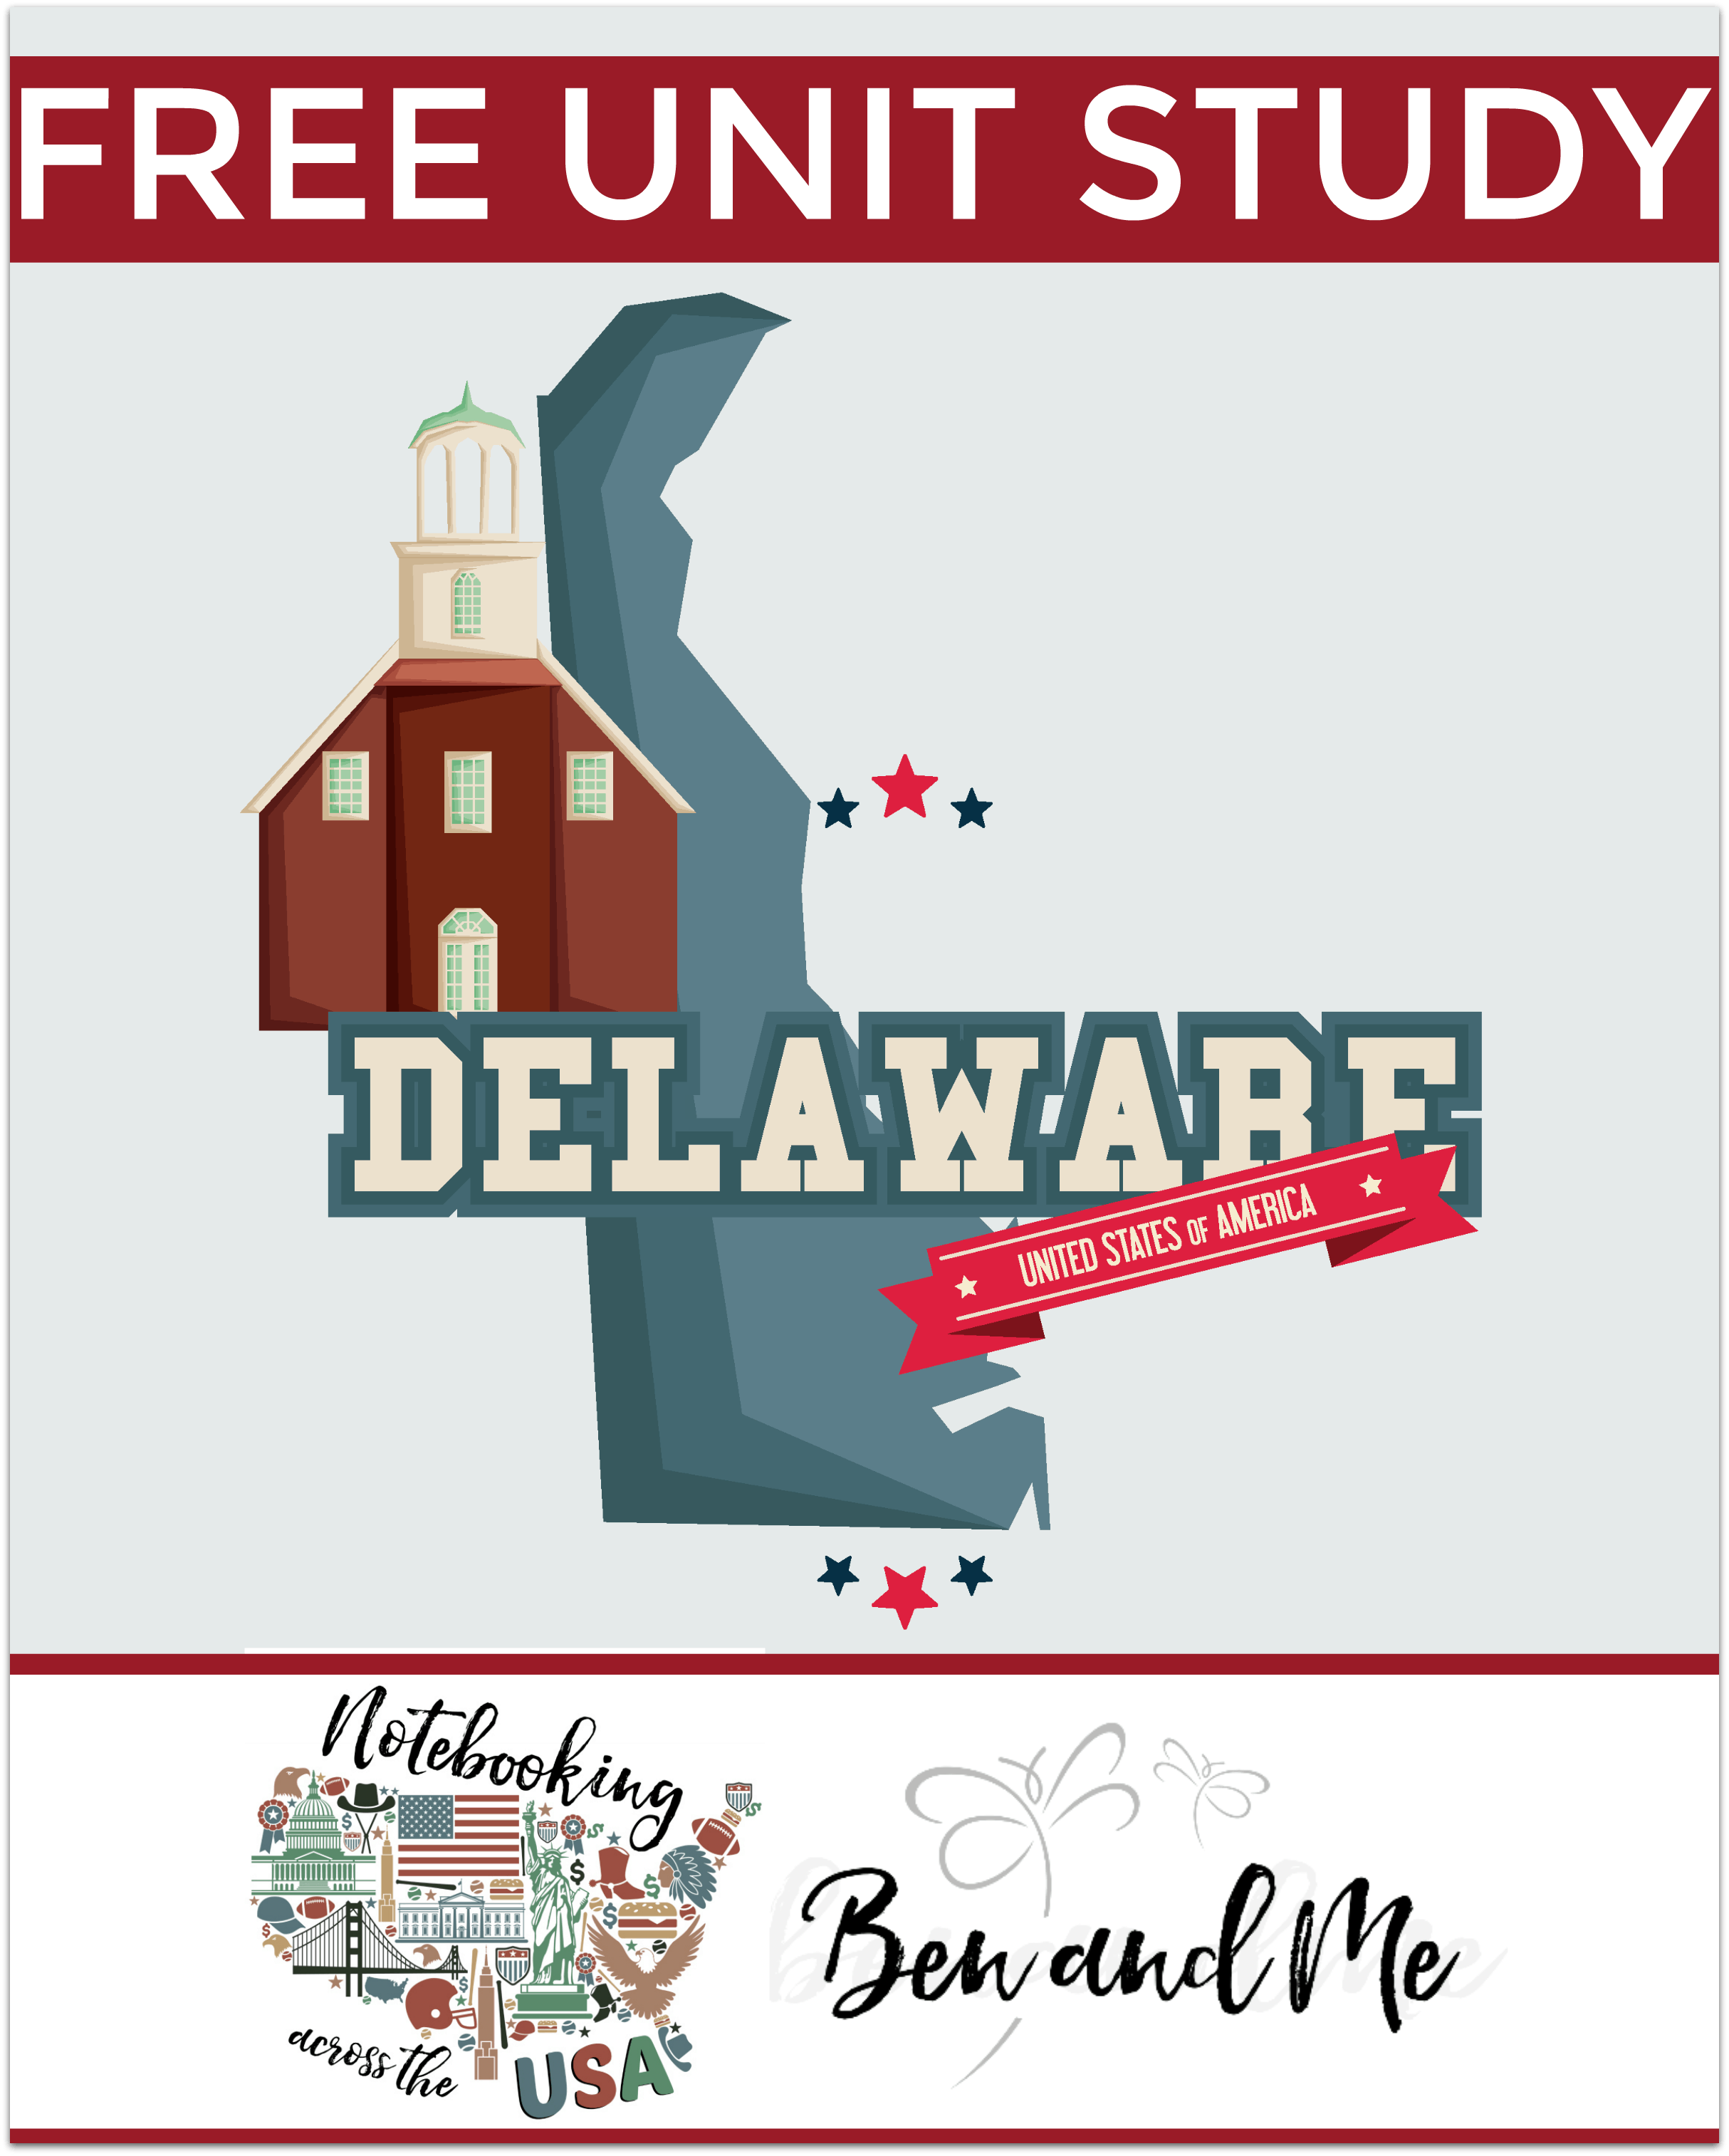 Notebooking Across the USA - Delaware, a free unit study for homeschool families with students grades 3-8.